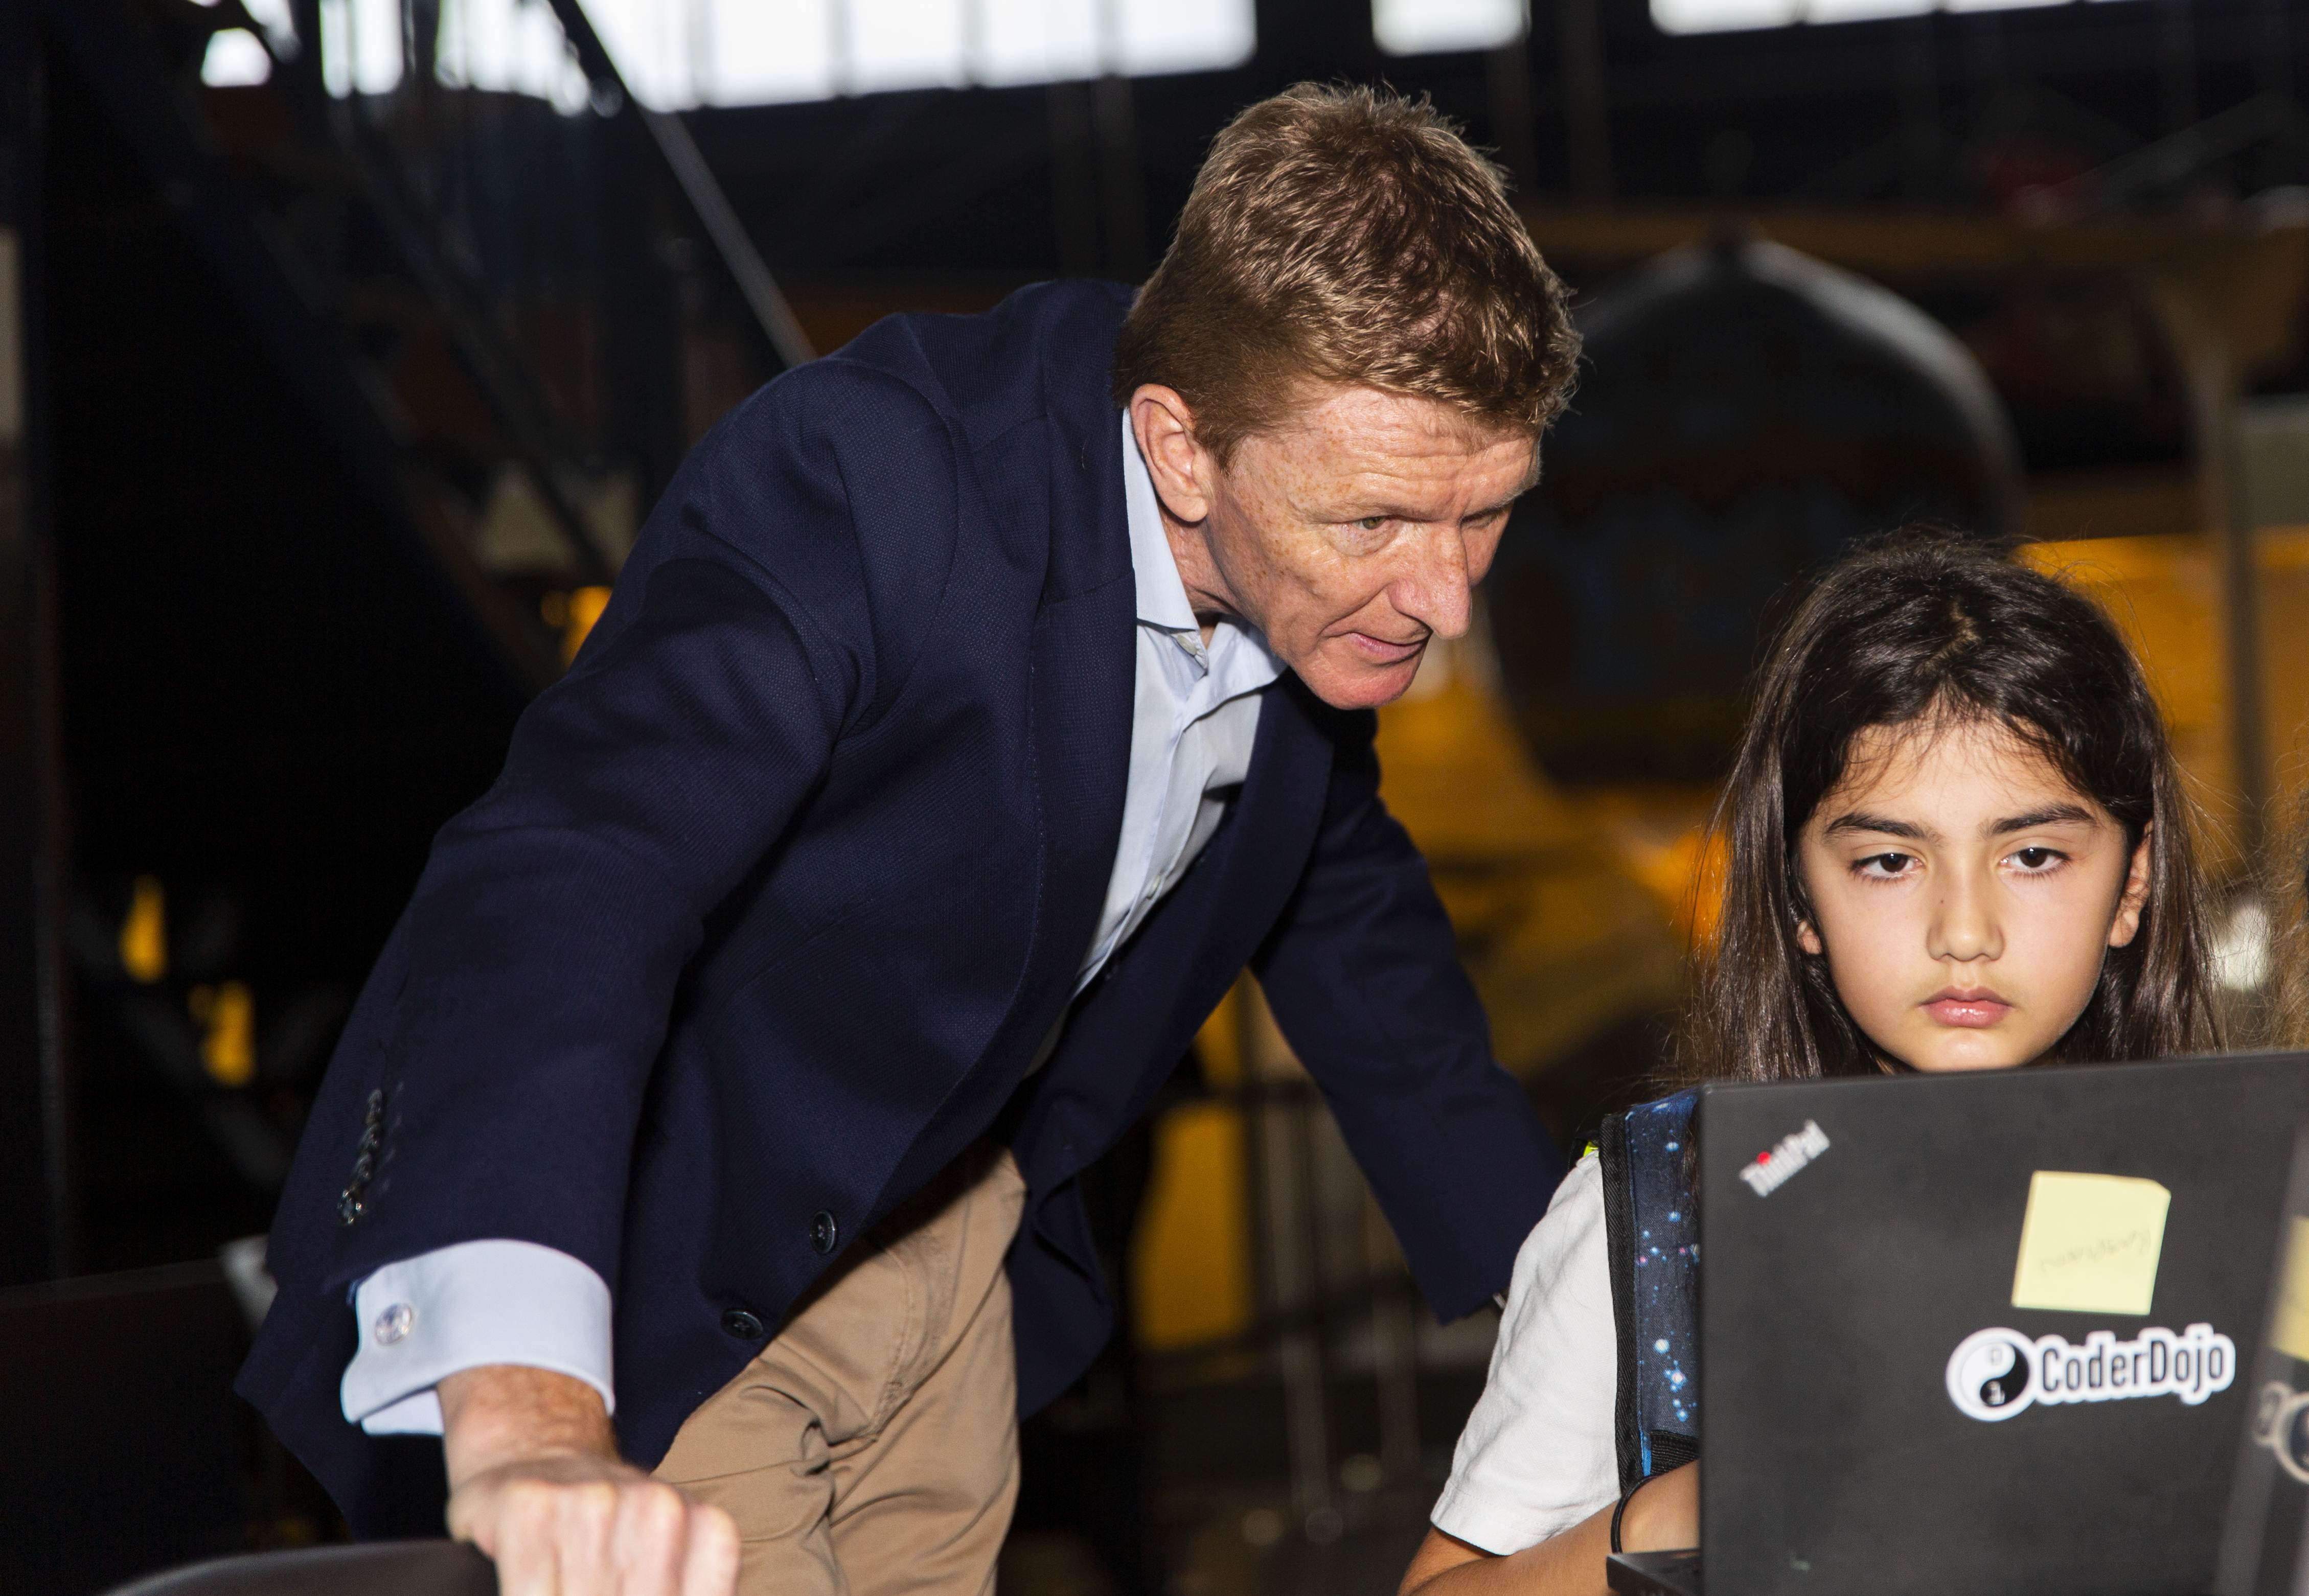 Tim Peake observes a girl writing code that will run in space as part of the European Astro Pi Challenge